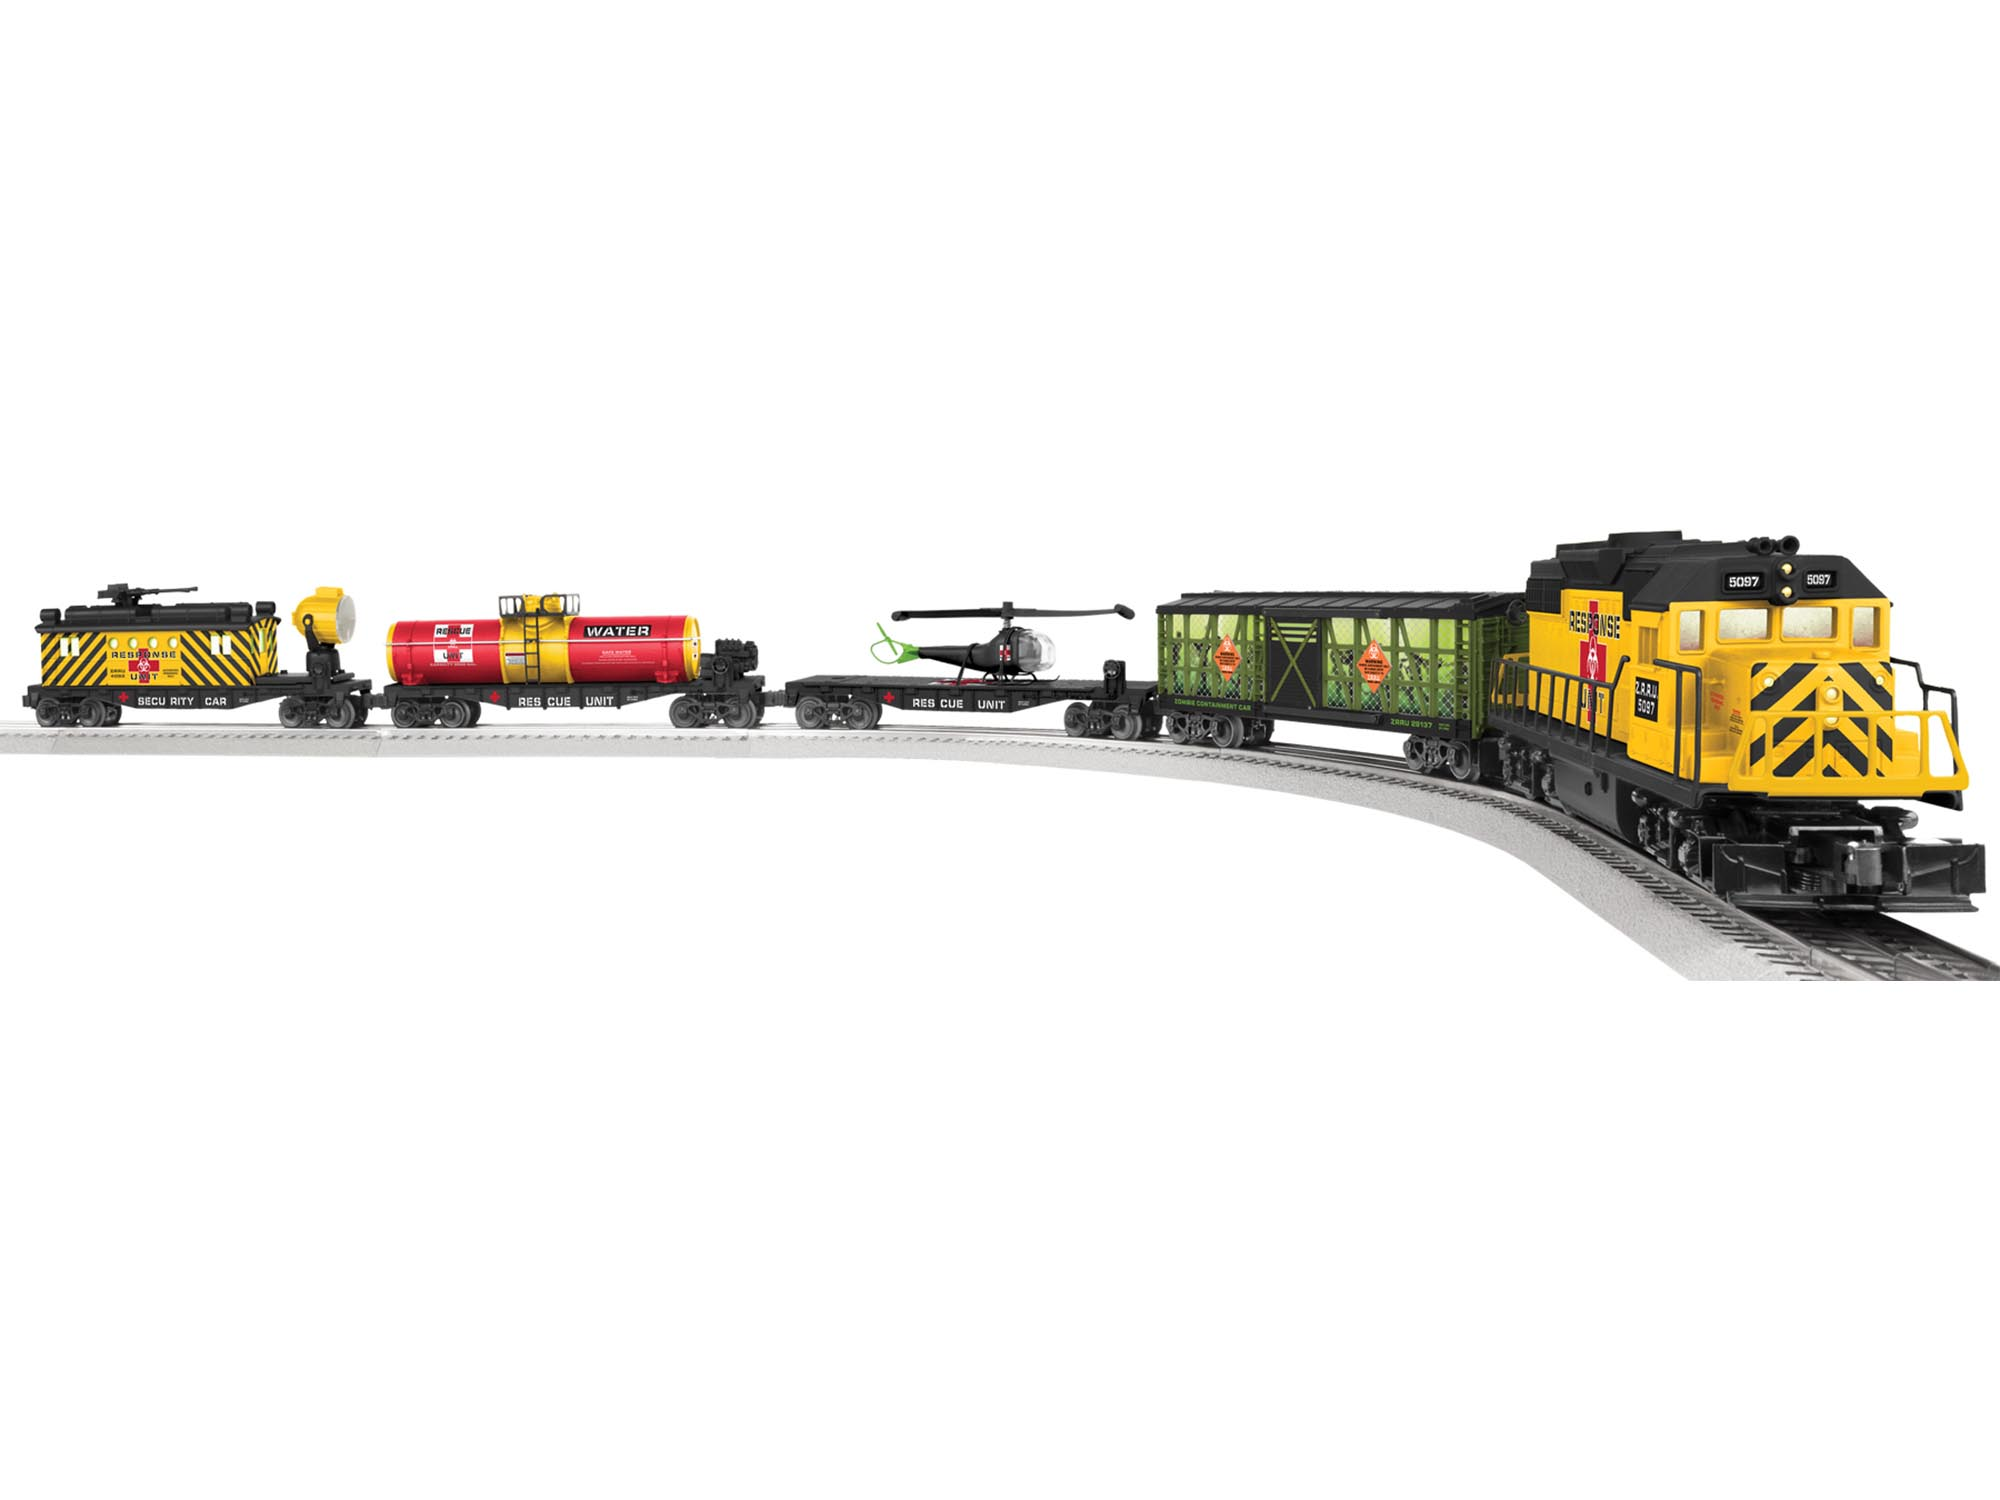 6-82099 ZOMBIE APOCALYPSE GP38 LIONCHIEF READY-TO-RUN SET